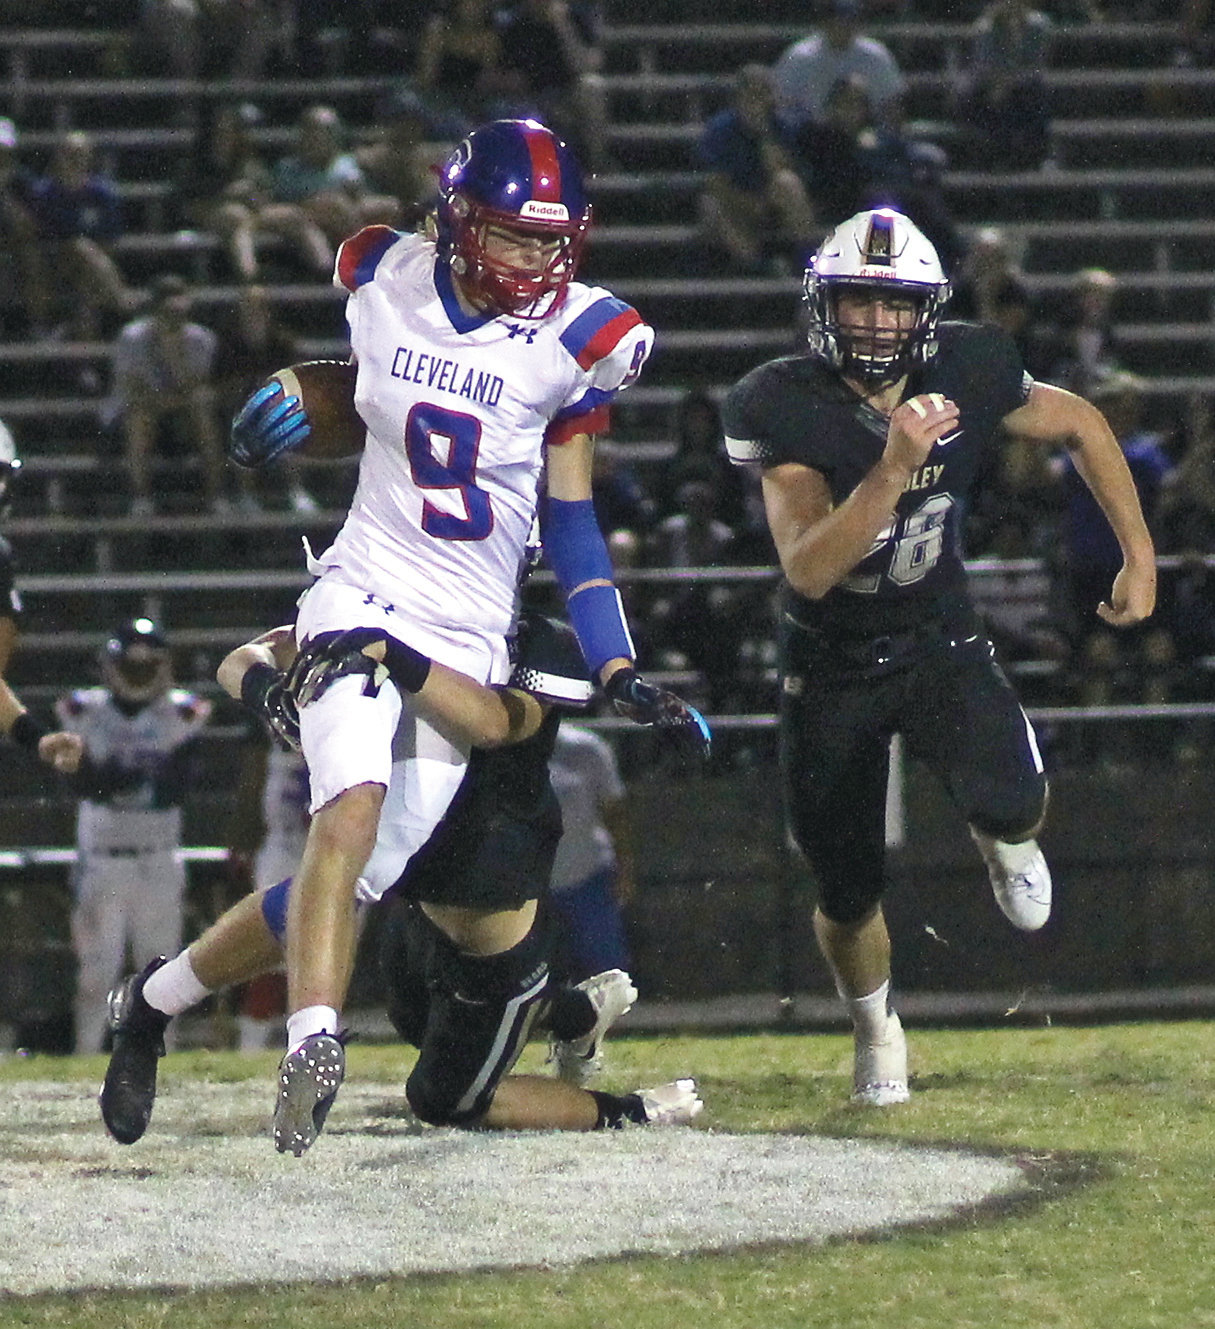 CLEVELAND'S Kley McGowan runs after a catch against Bradley Central. The Blue Raiders  travel to Shelbyville for the second of three straight road trips, Friday.